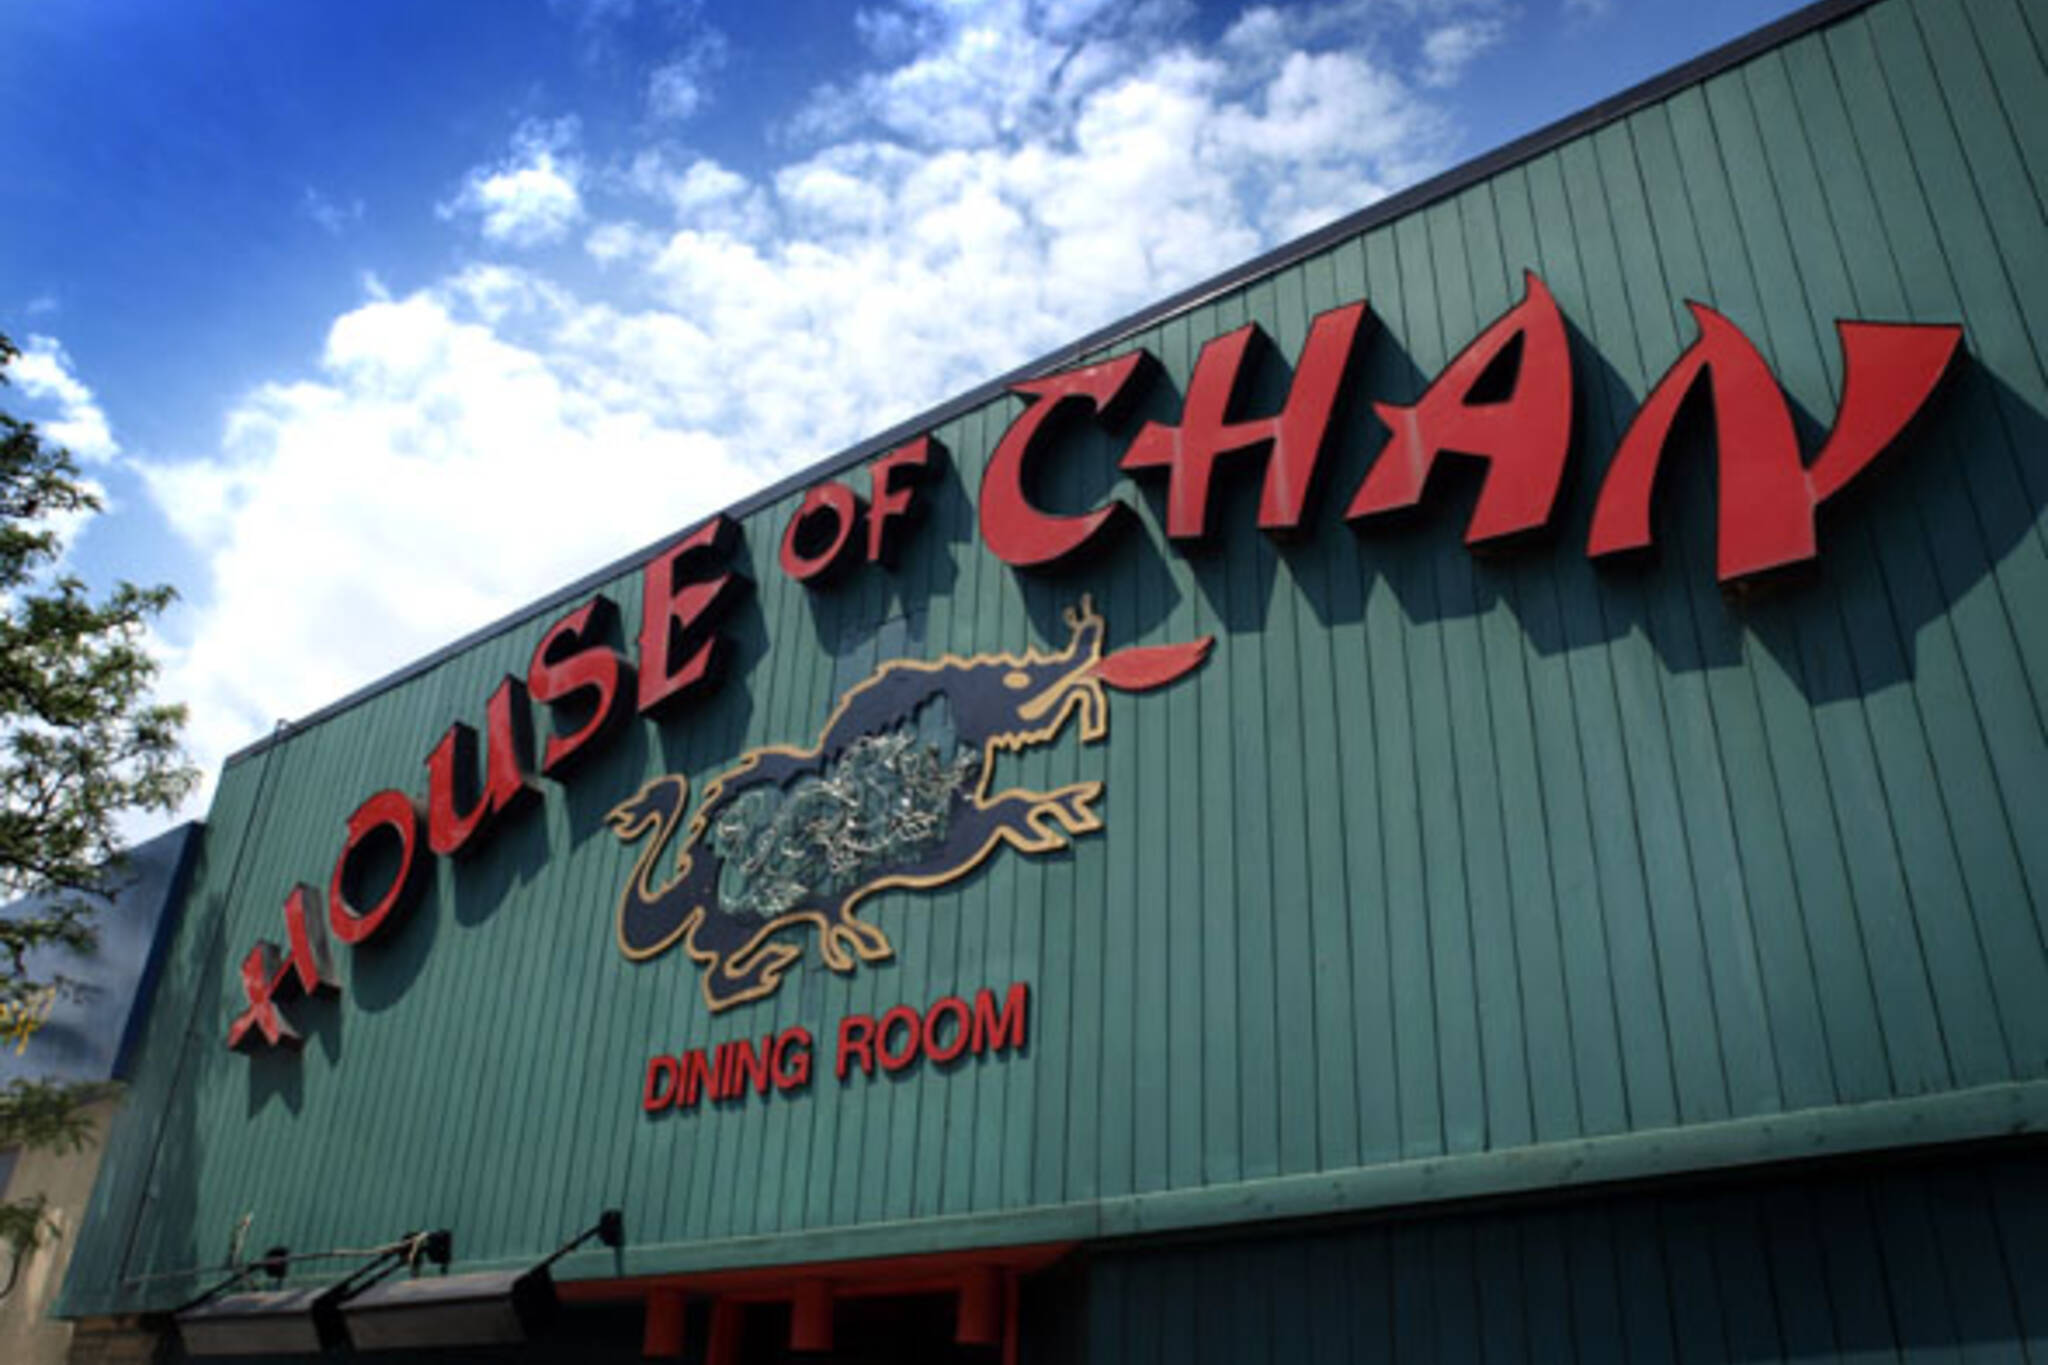 House Of Chan